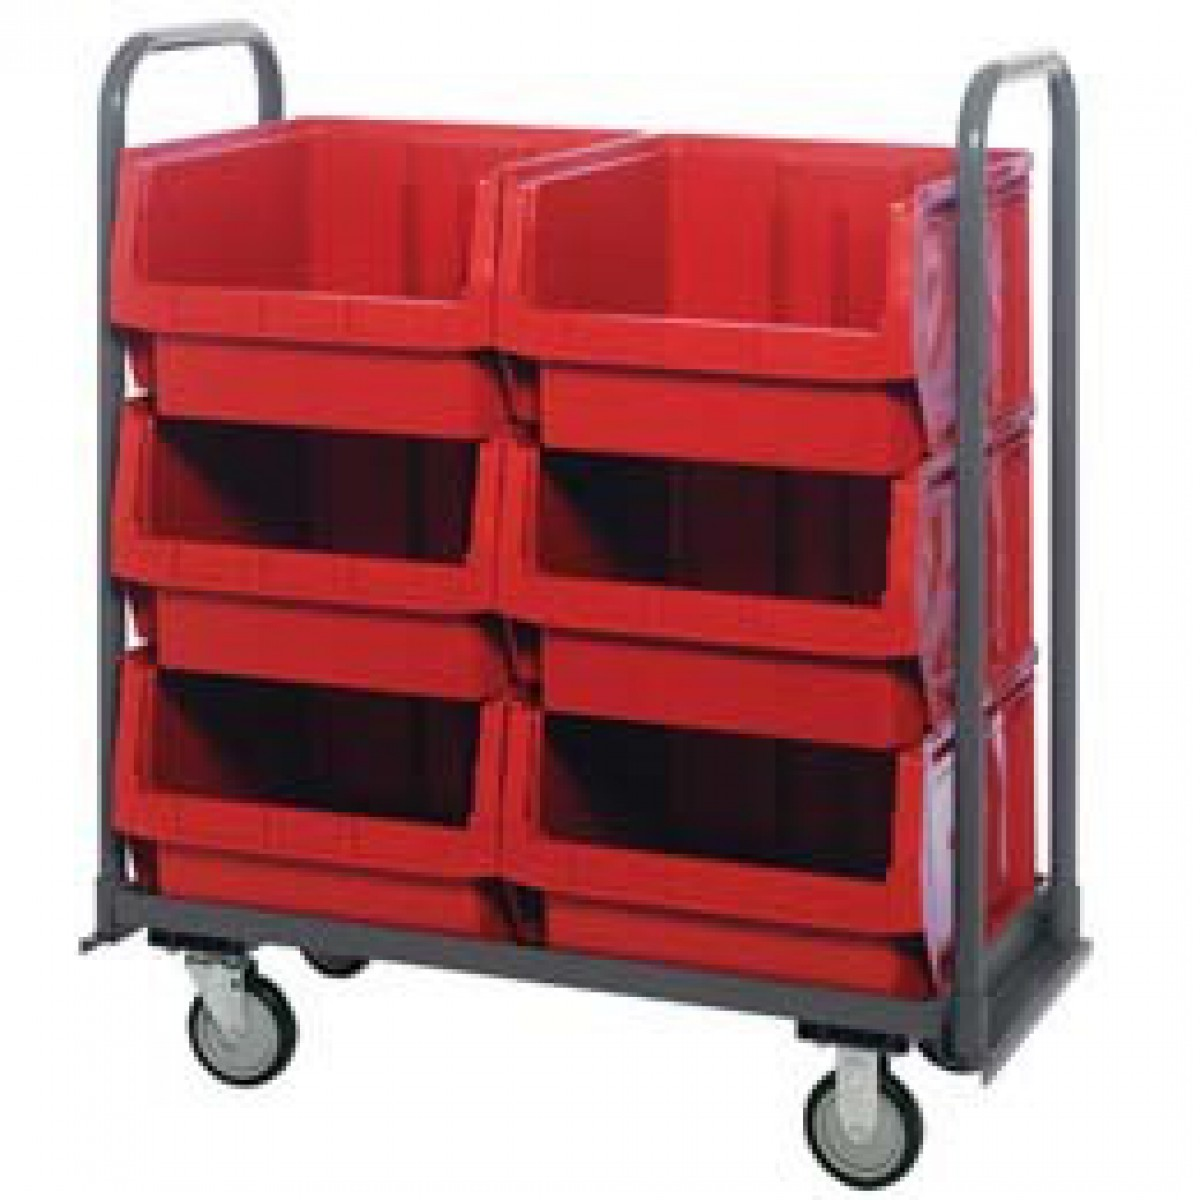 Metalbincartsingle Multisizebincart Shortbincart Uboatbincart Verticalbincarts Yellowbincart Plastic Storage Bins On Cart